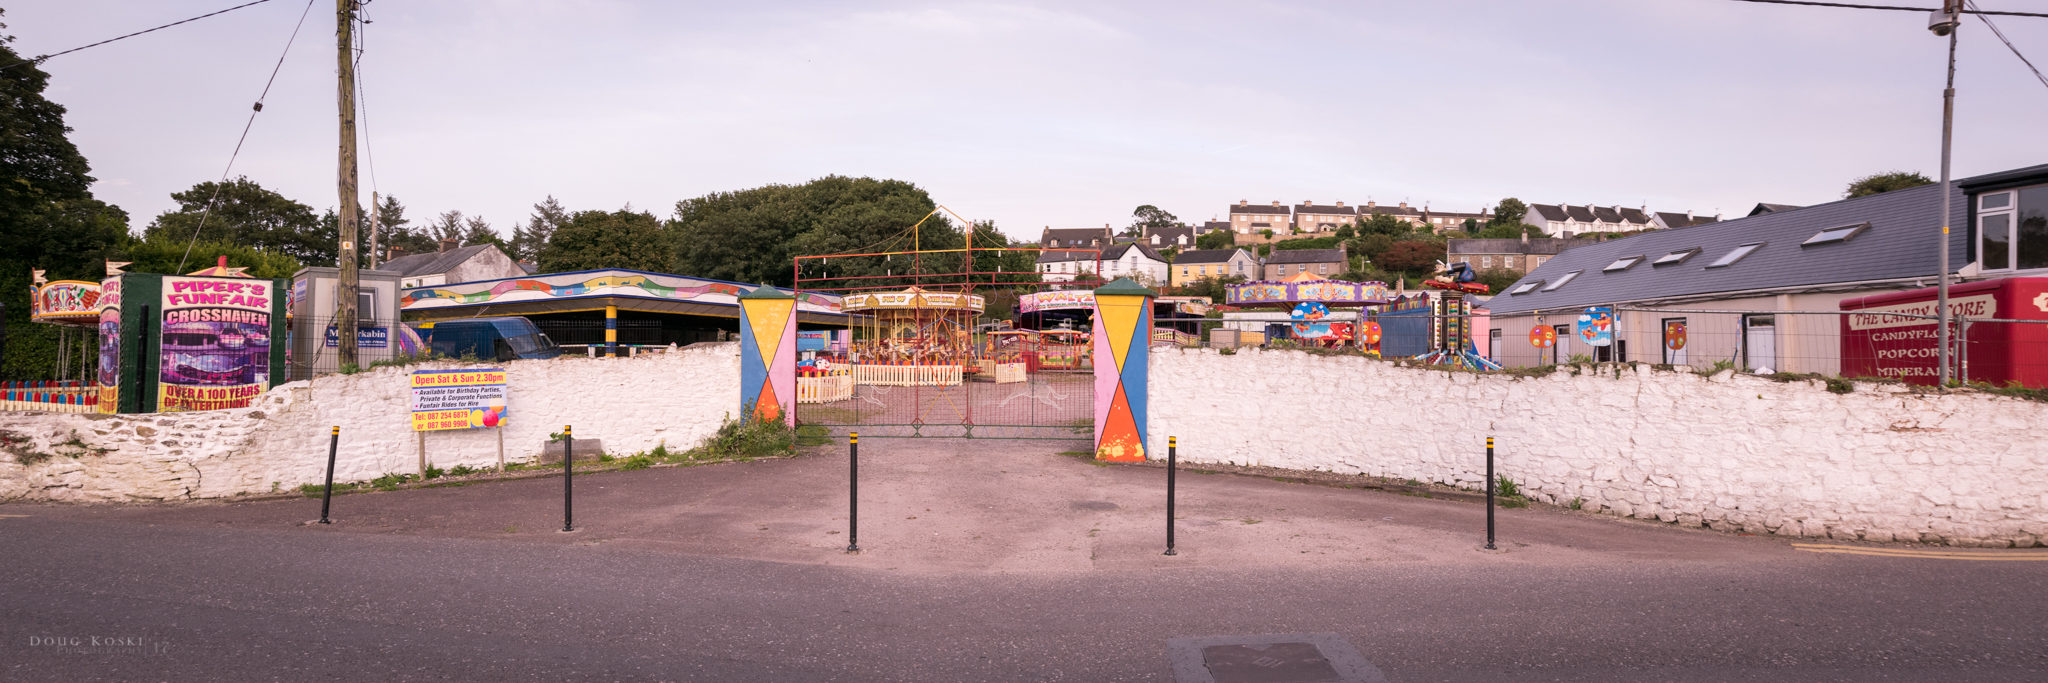 A little amusement park that Sinéad used to go when she was much younger.